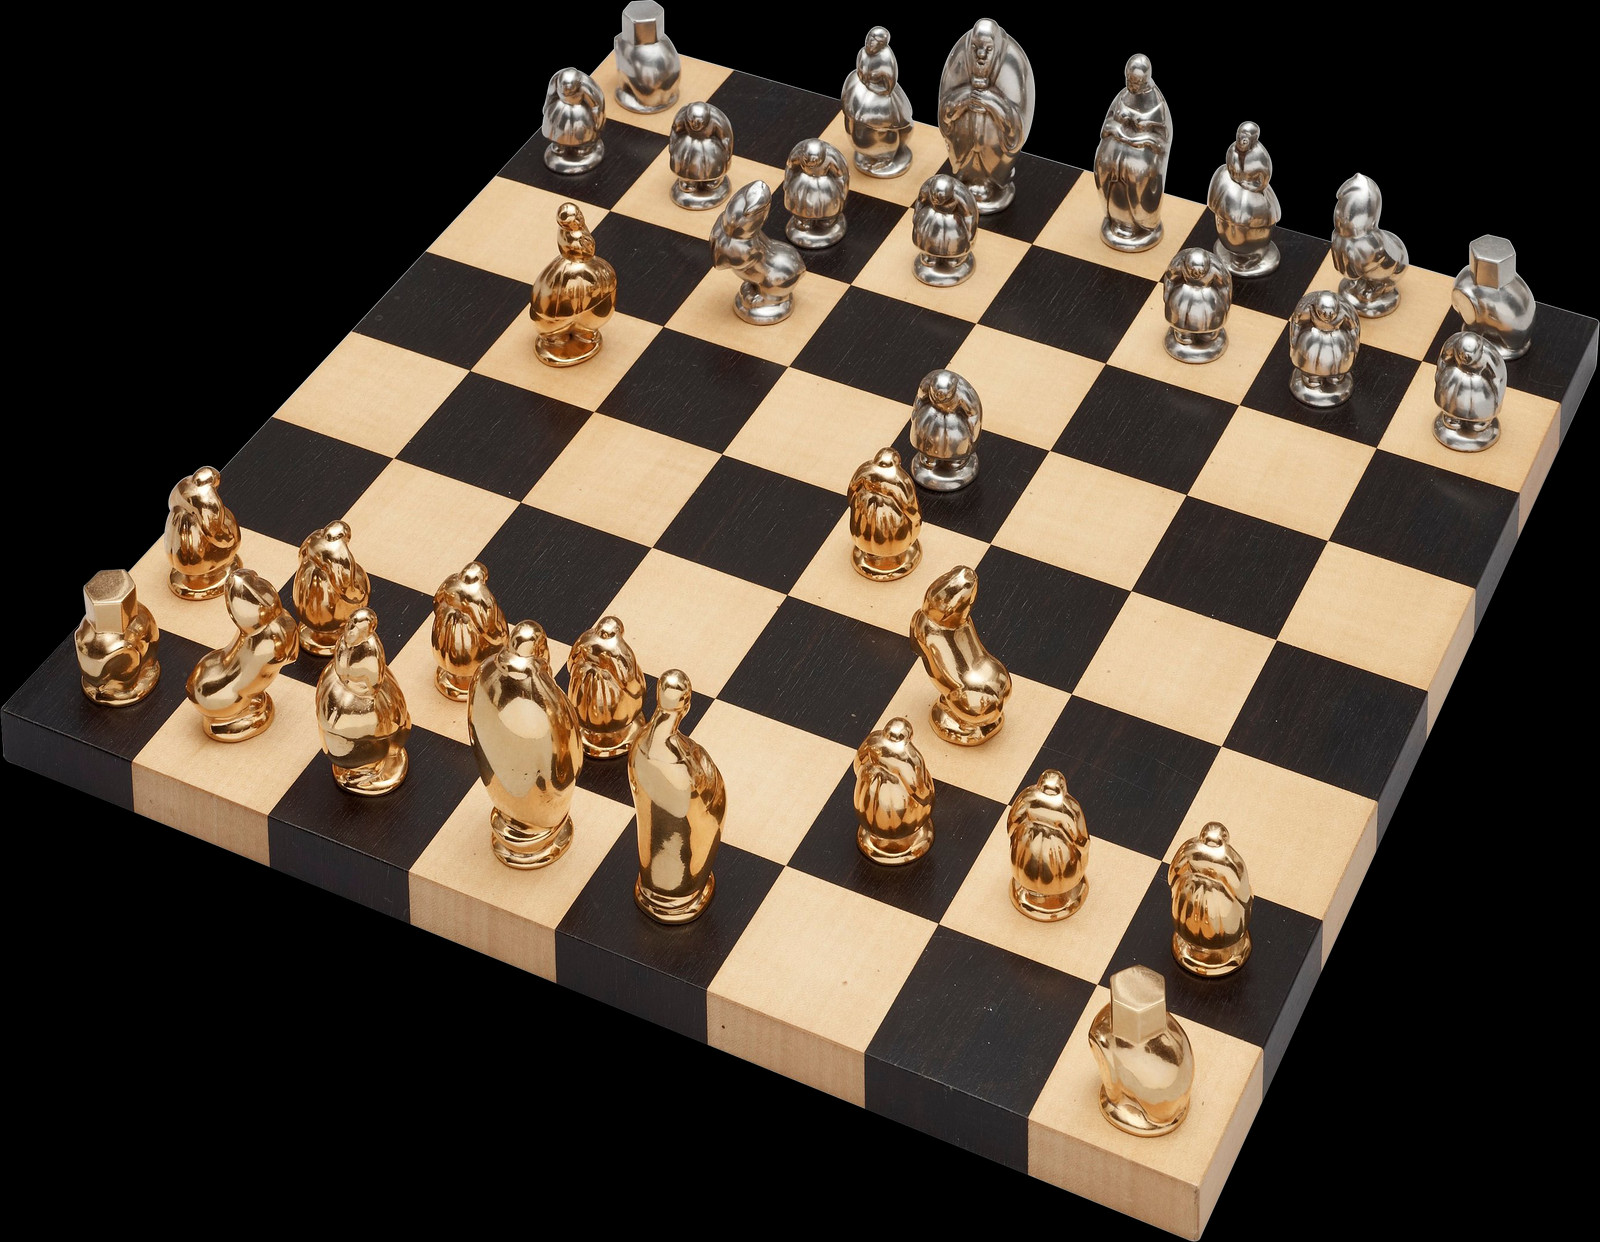 Checkered drawing chess board. Png images is a